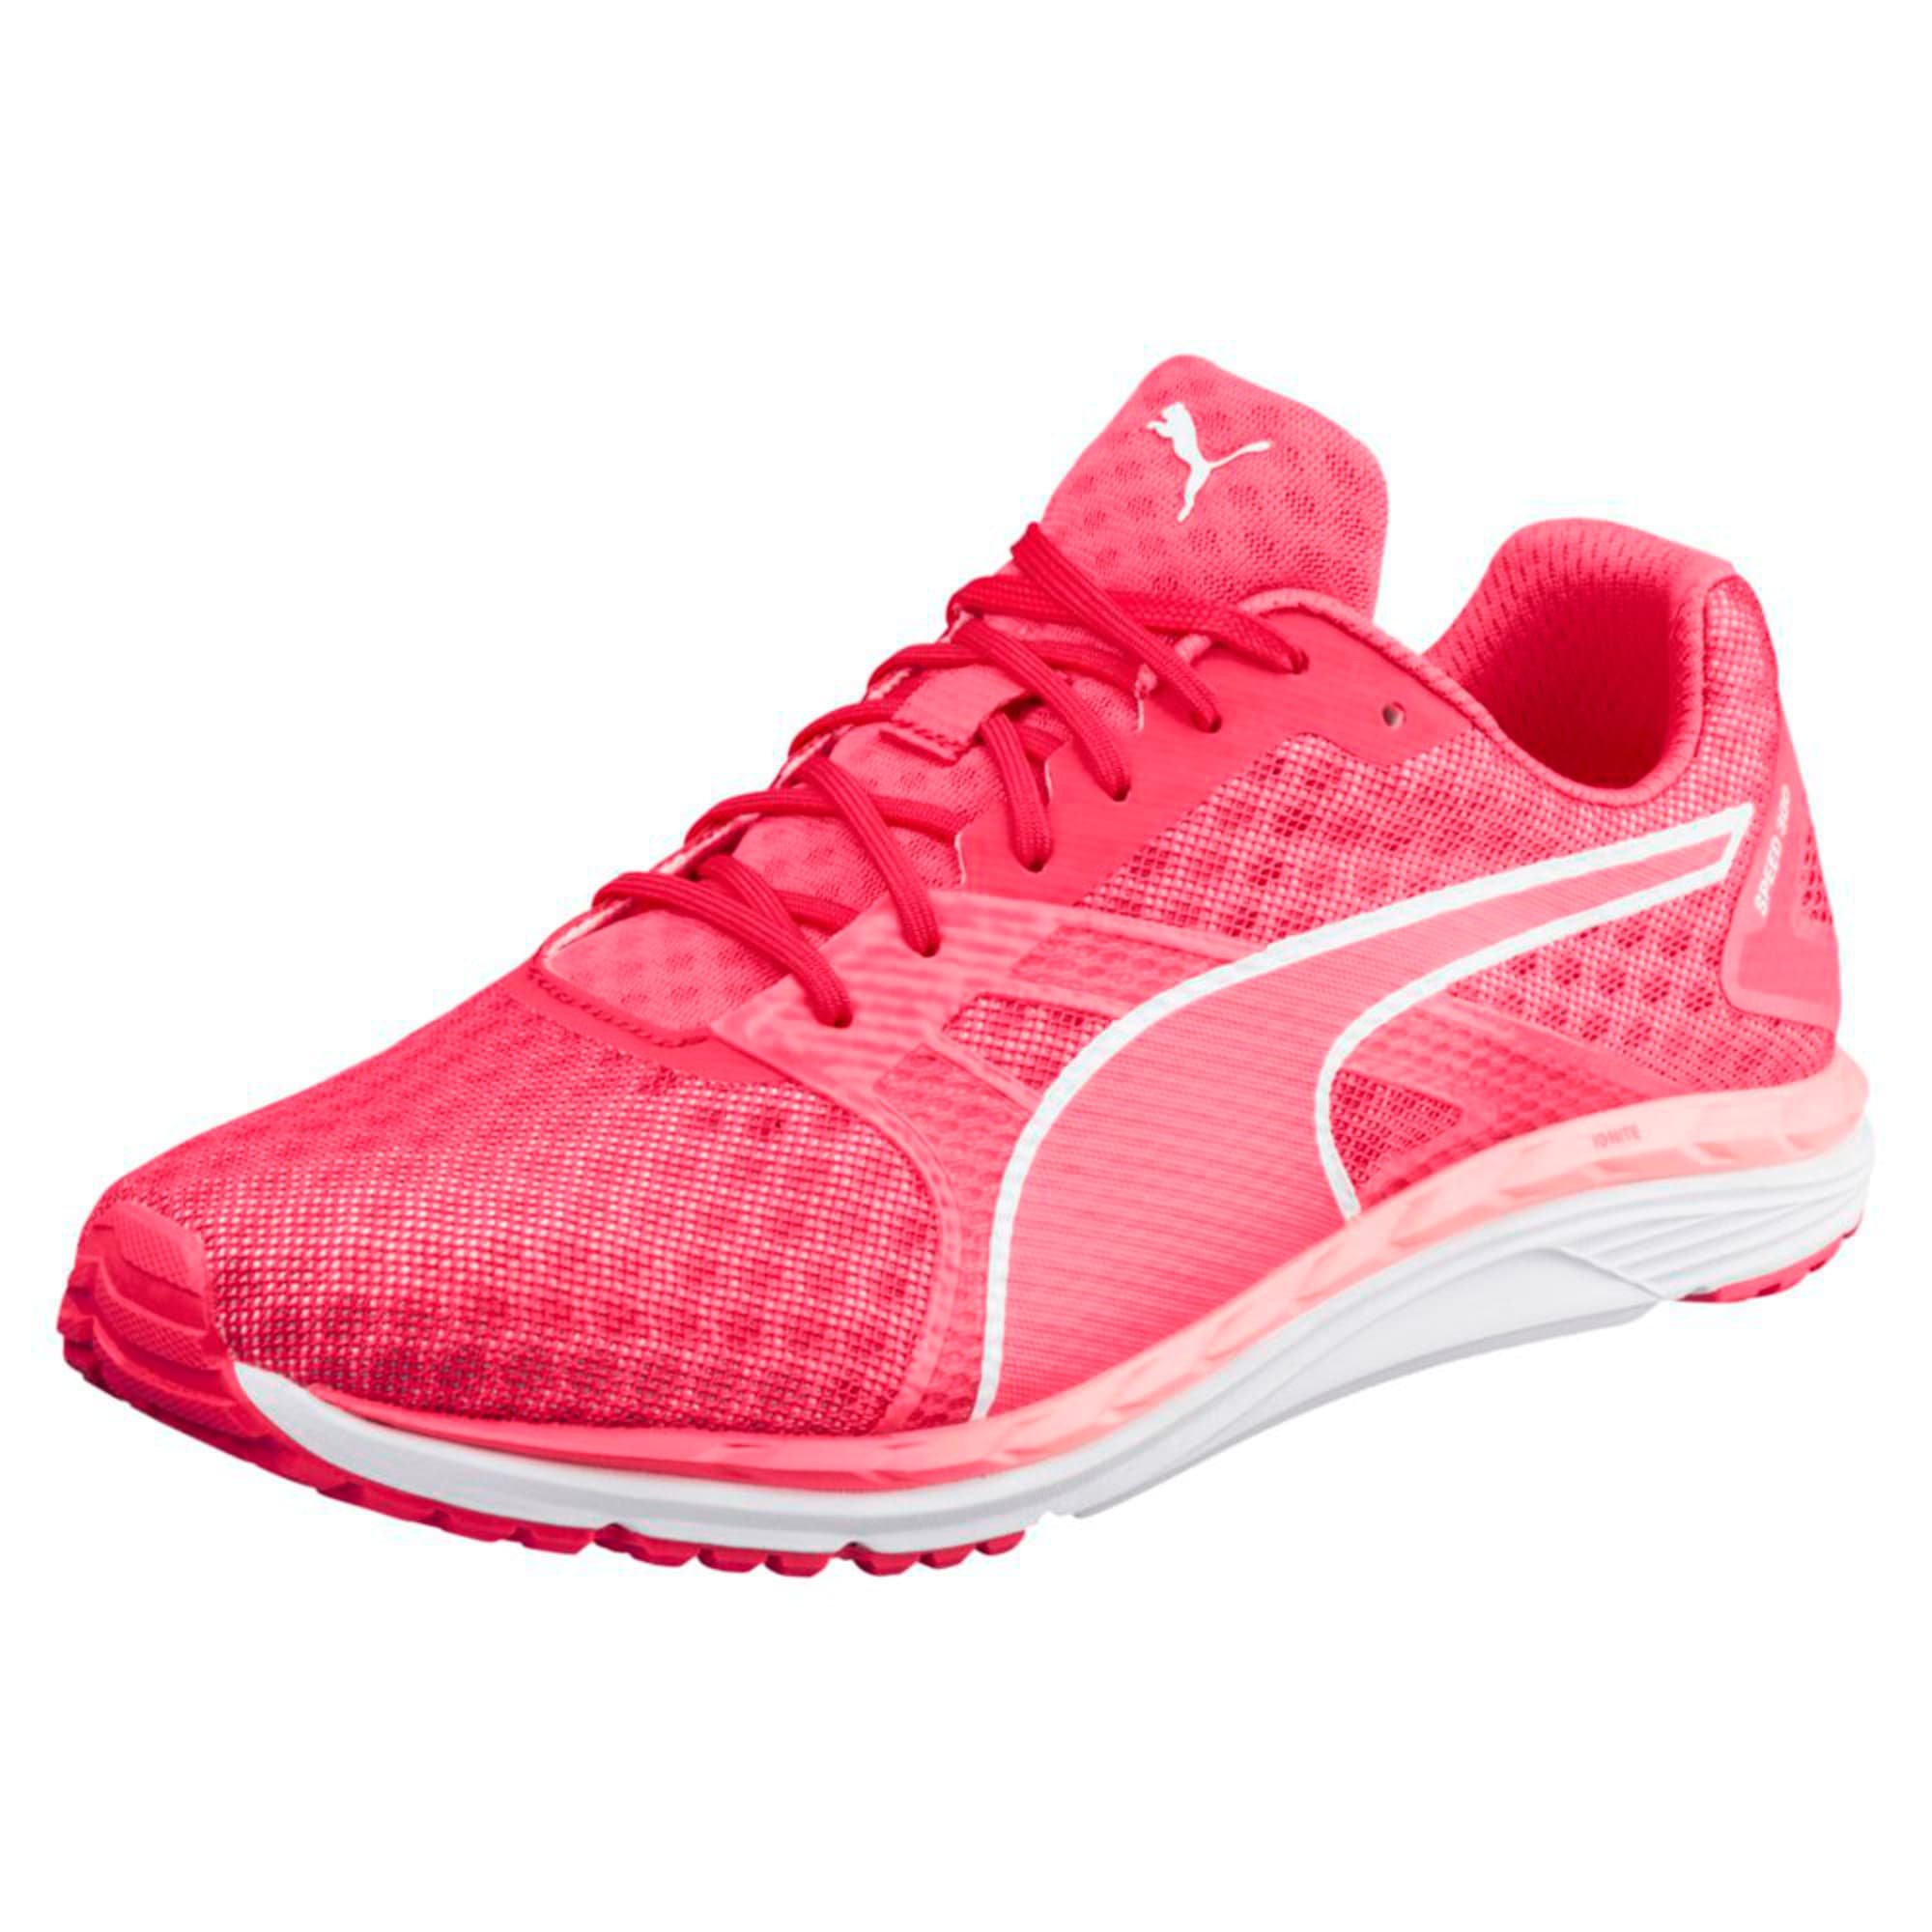 Thumbnail 1 of Speed 300 IGNITE 3 Women's Running Shoes, Pink-Fluo Peach-White, medium-IND